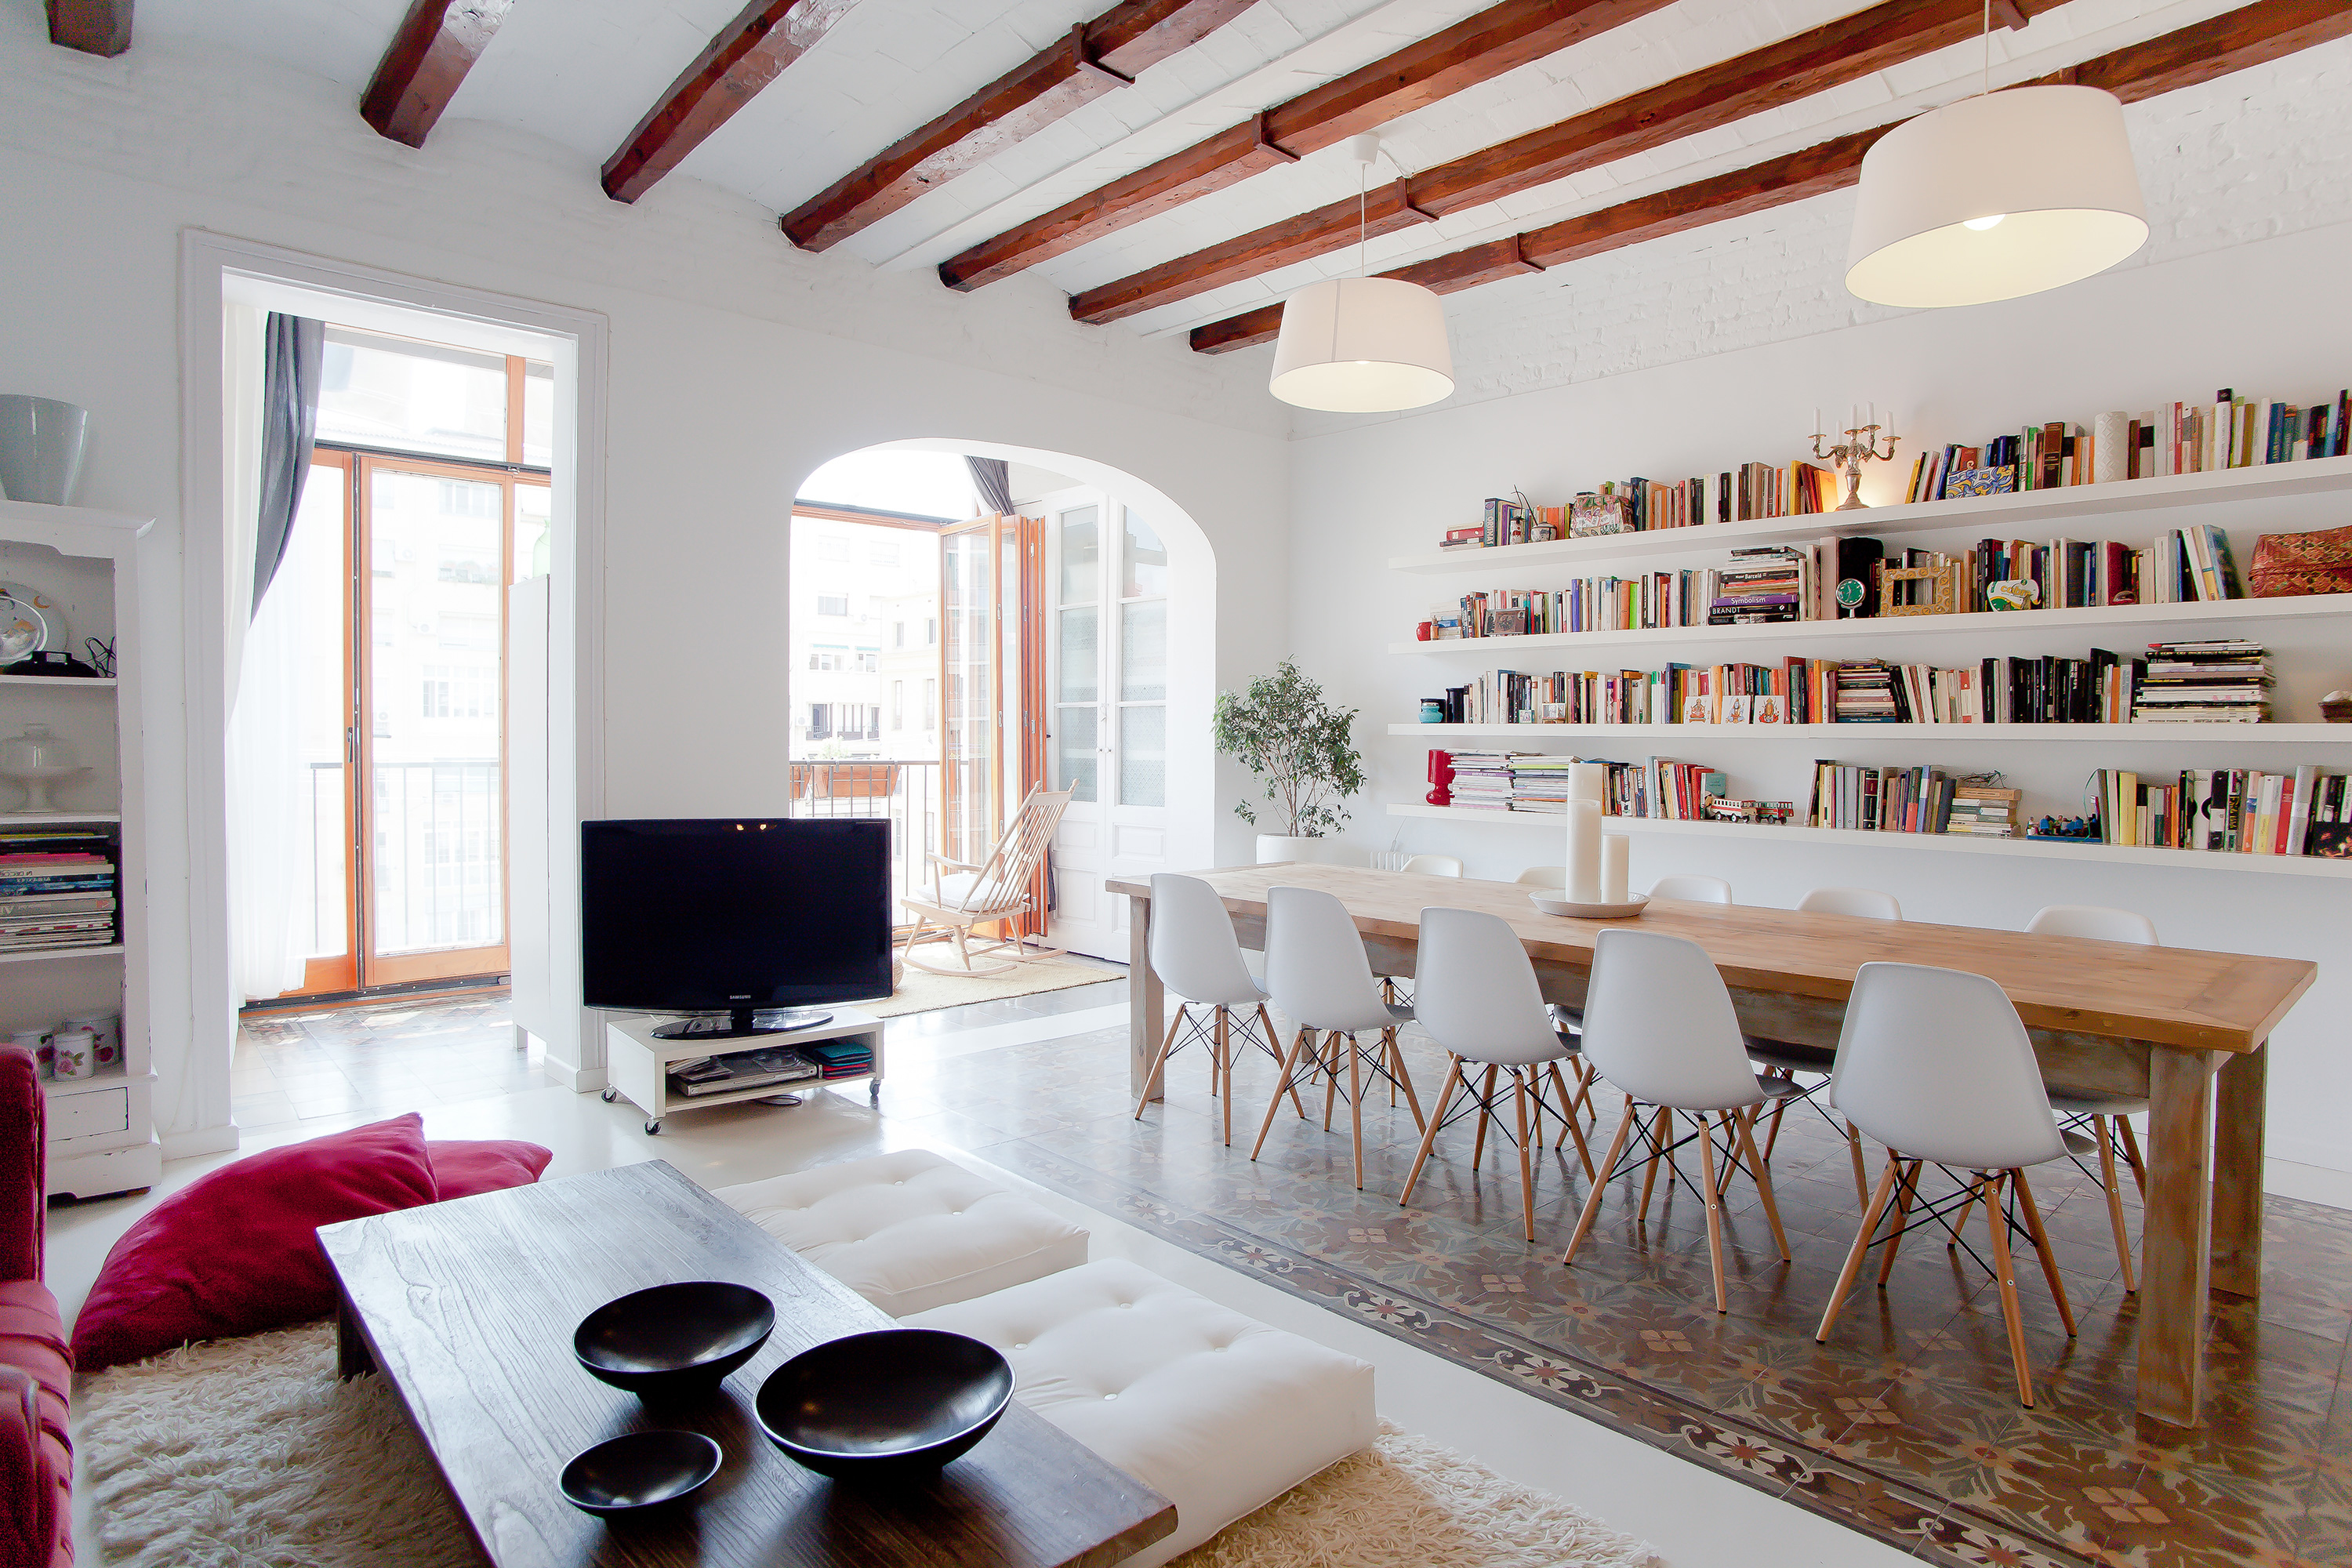 Apartment in Barcelona, Spain offered through airbnb.